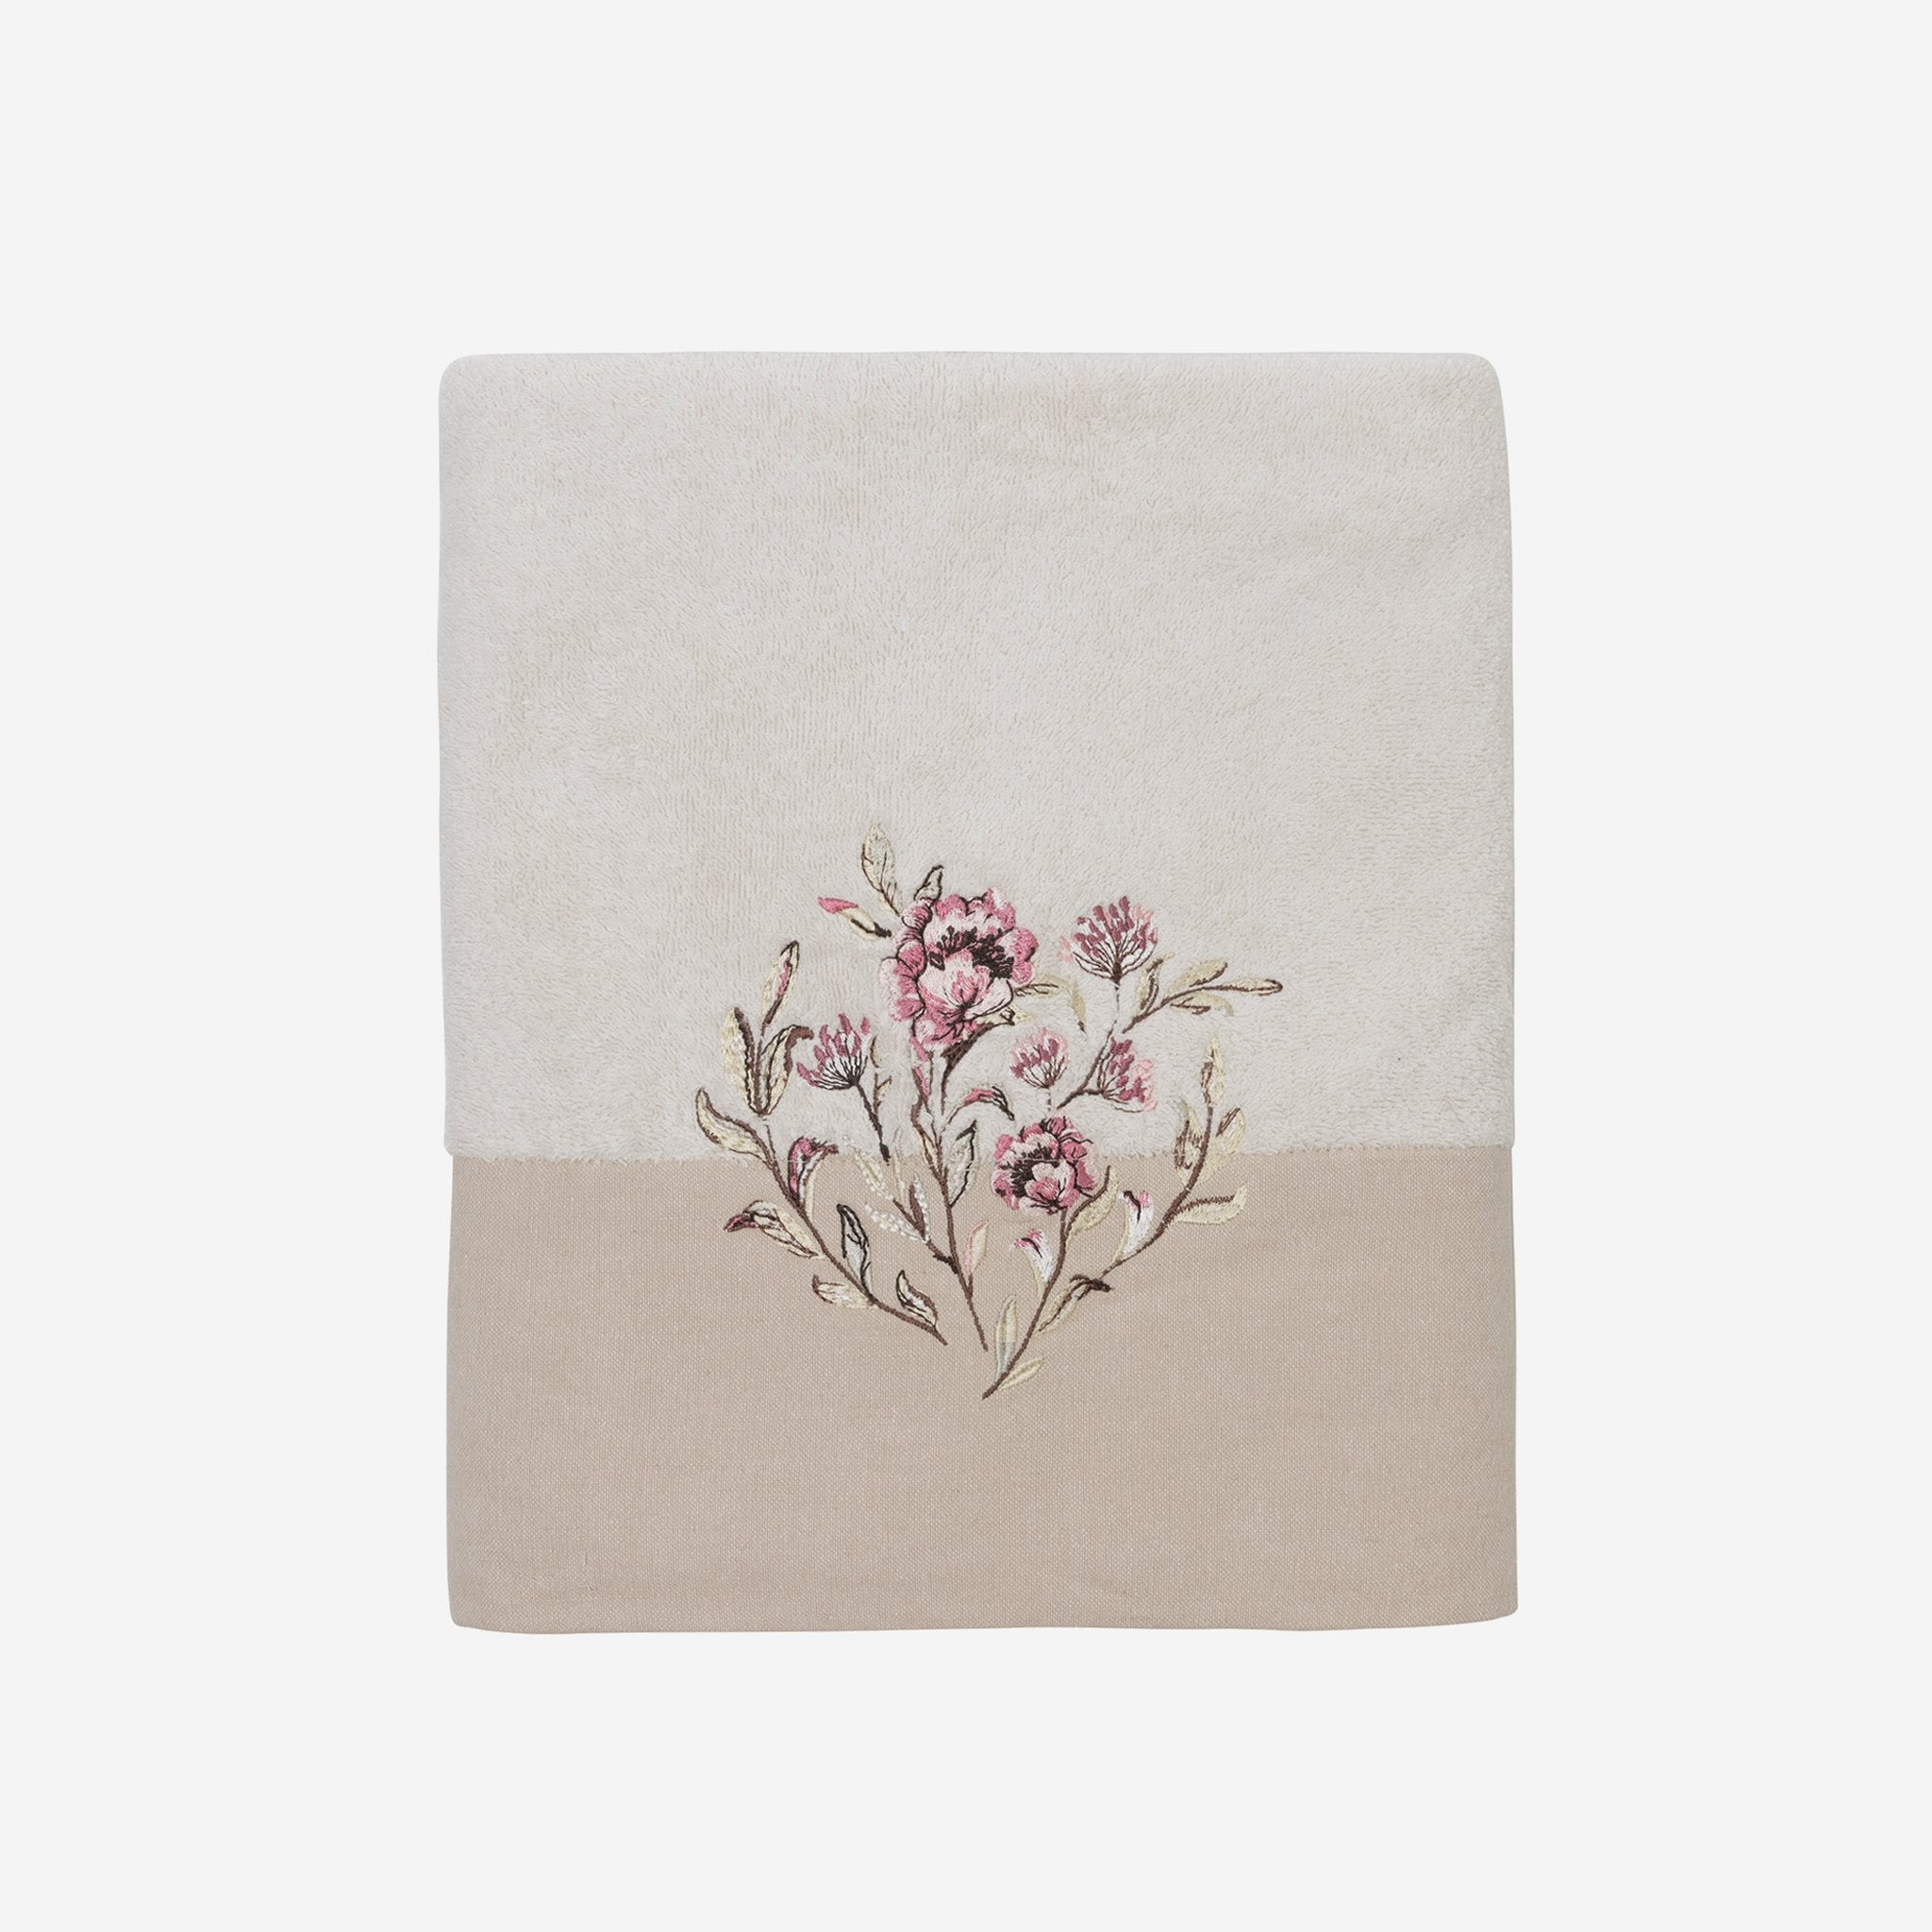 Alene Bath Towel With Lovely Floral Embroidery